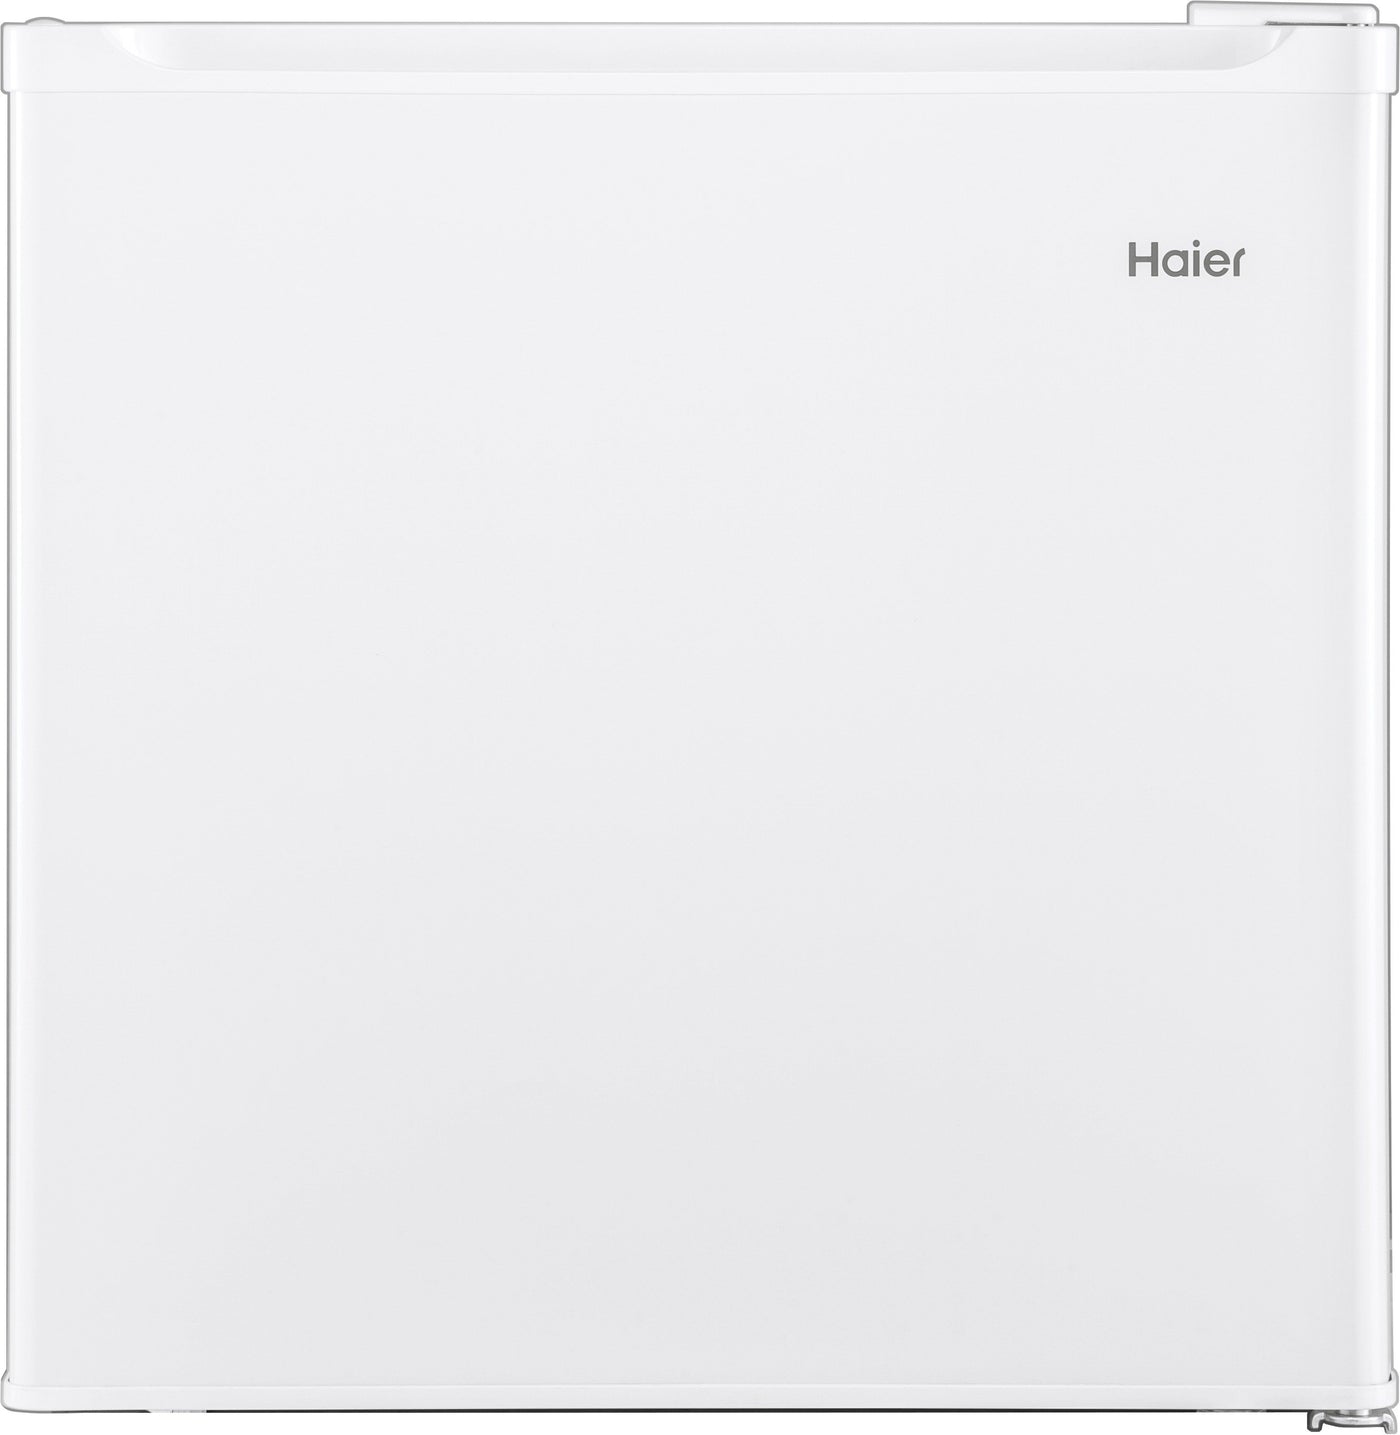 Haier White Compact Refrigerator (1.7 Cu. Ft